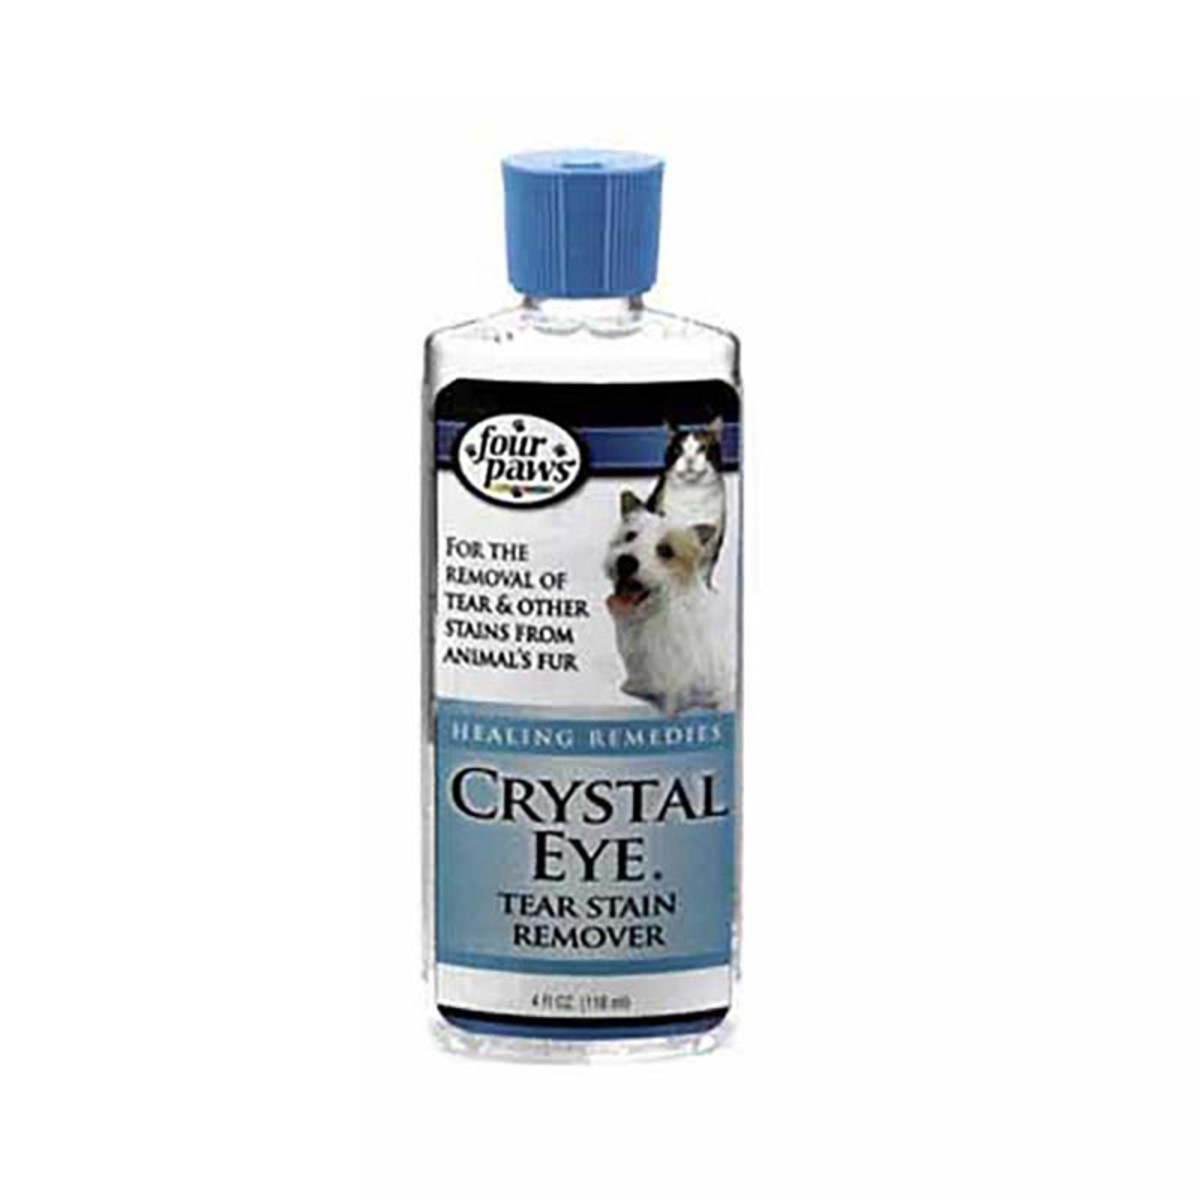 4 ounce Four Paws Crystal Eye Tear Stain Remover for Dogs at Ryan's Pet Supplies